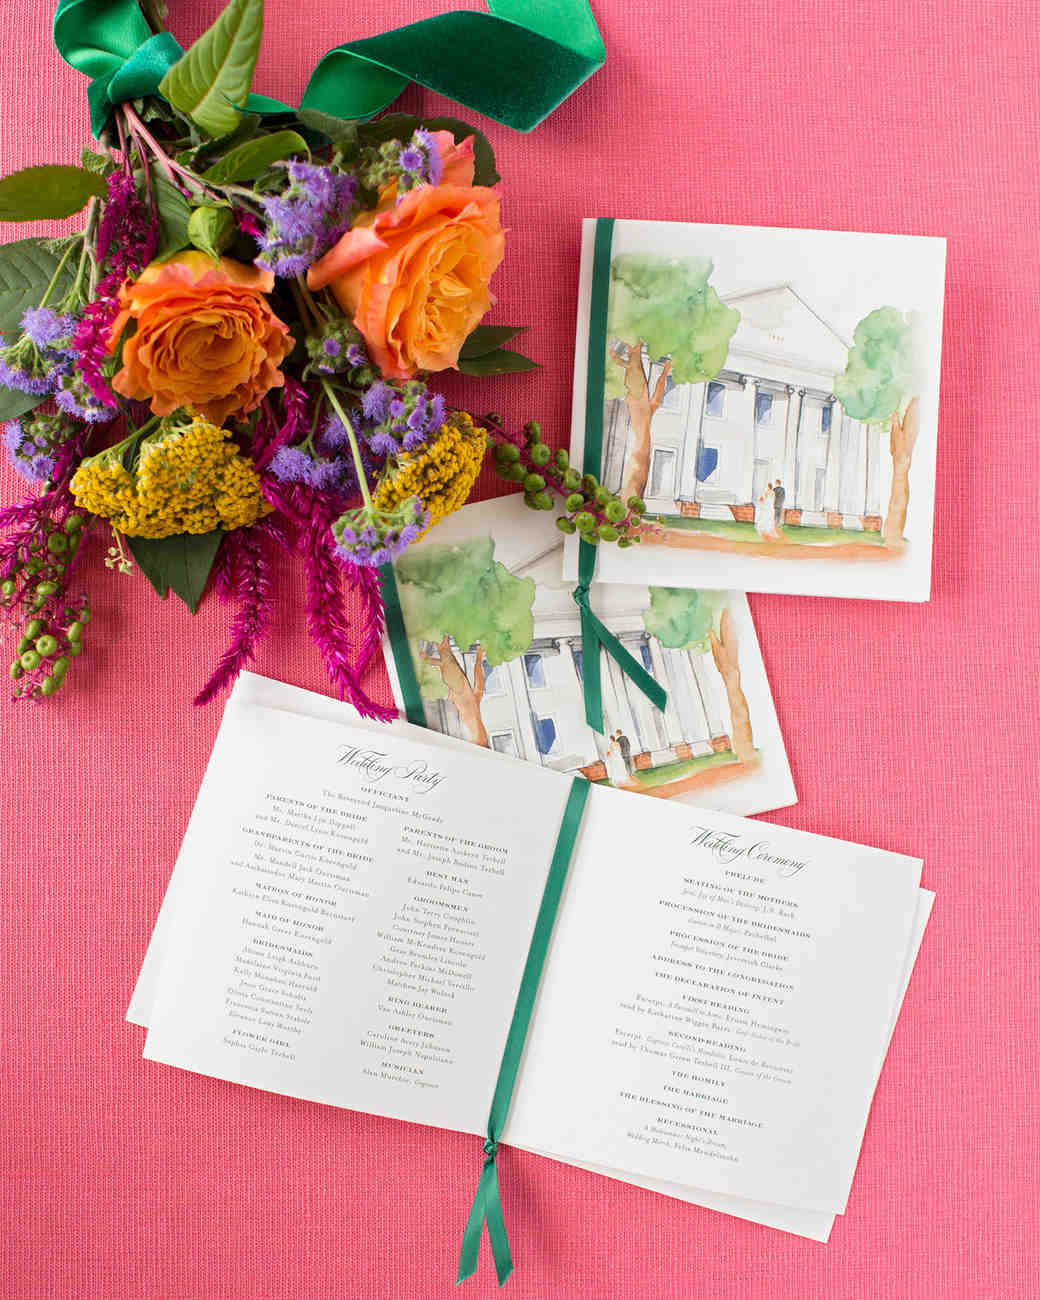 madelyn jon wedding program and flowers